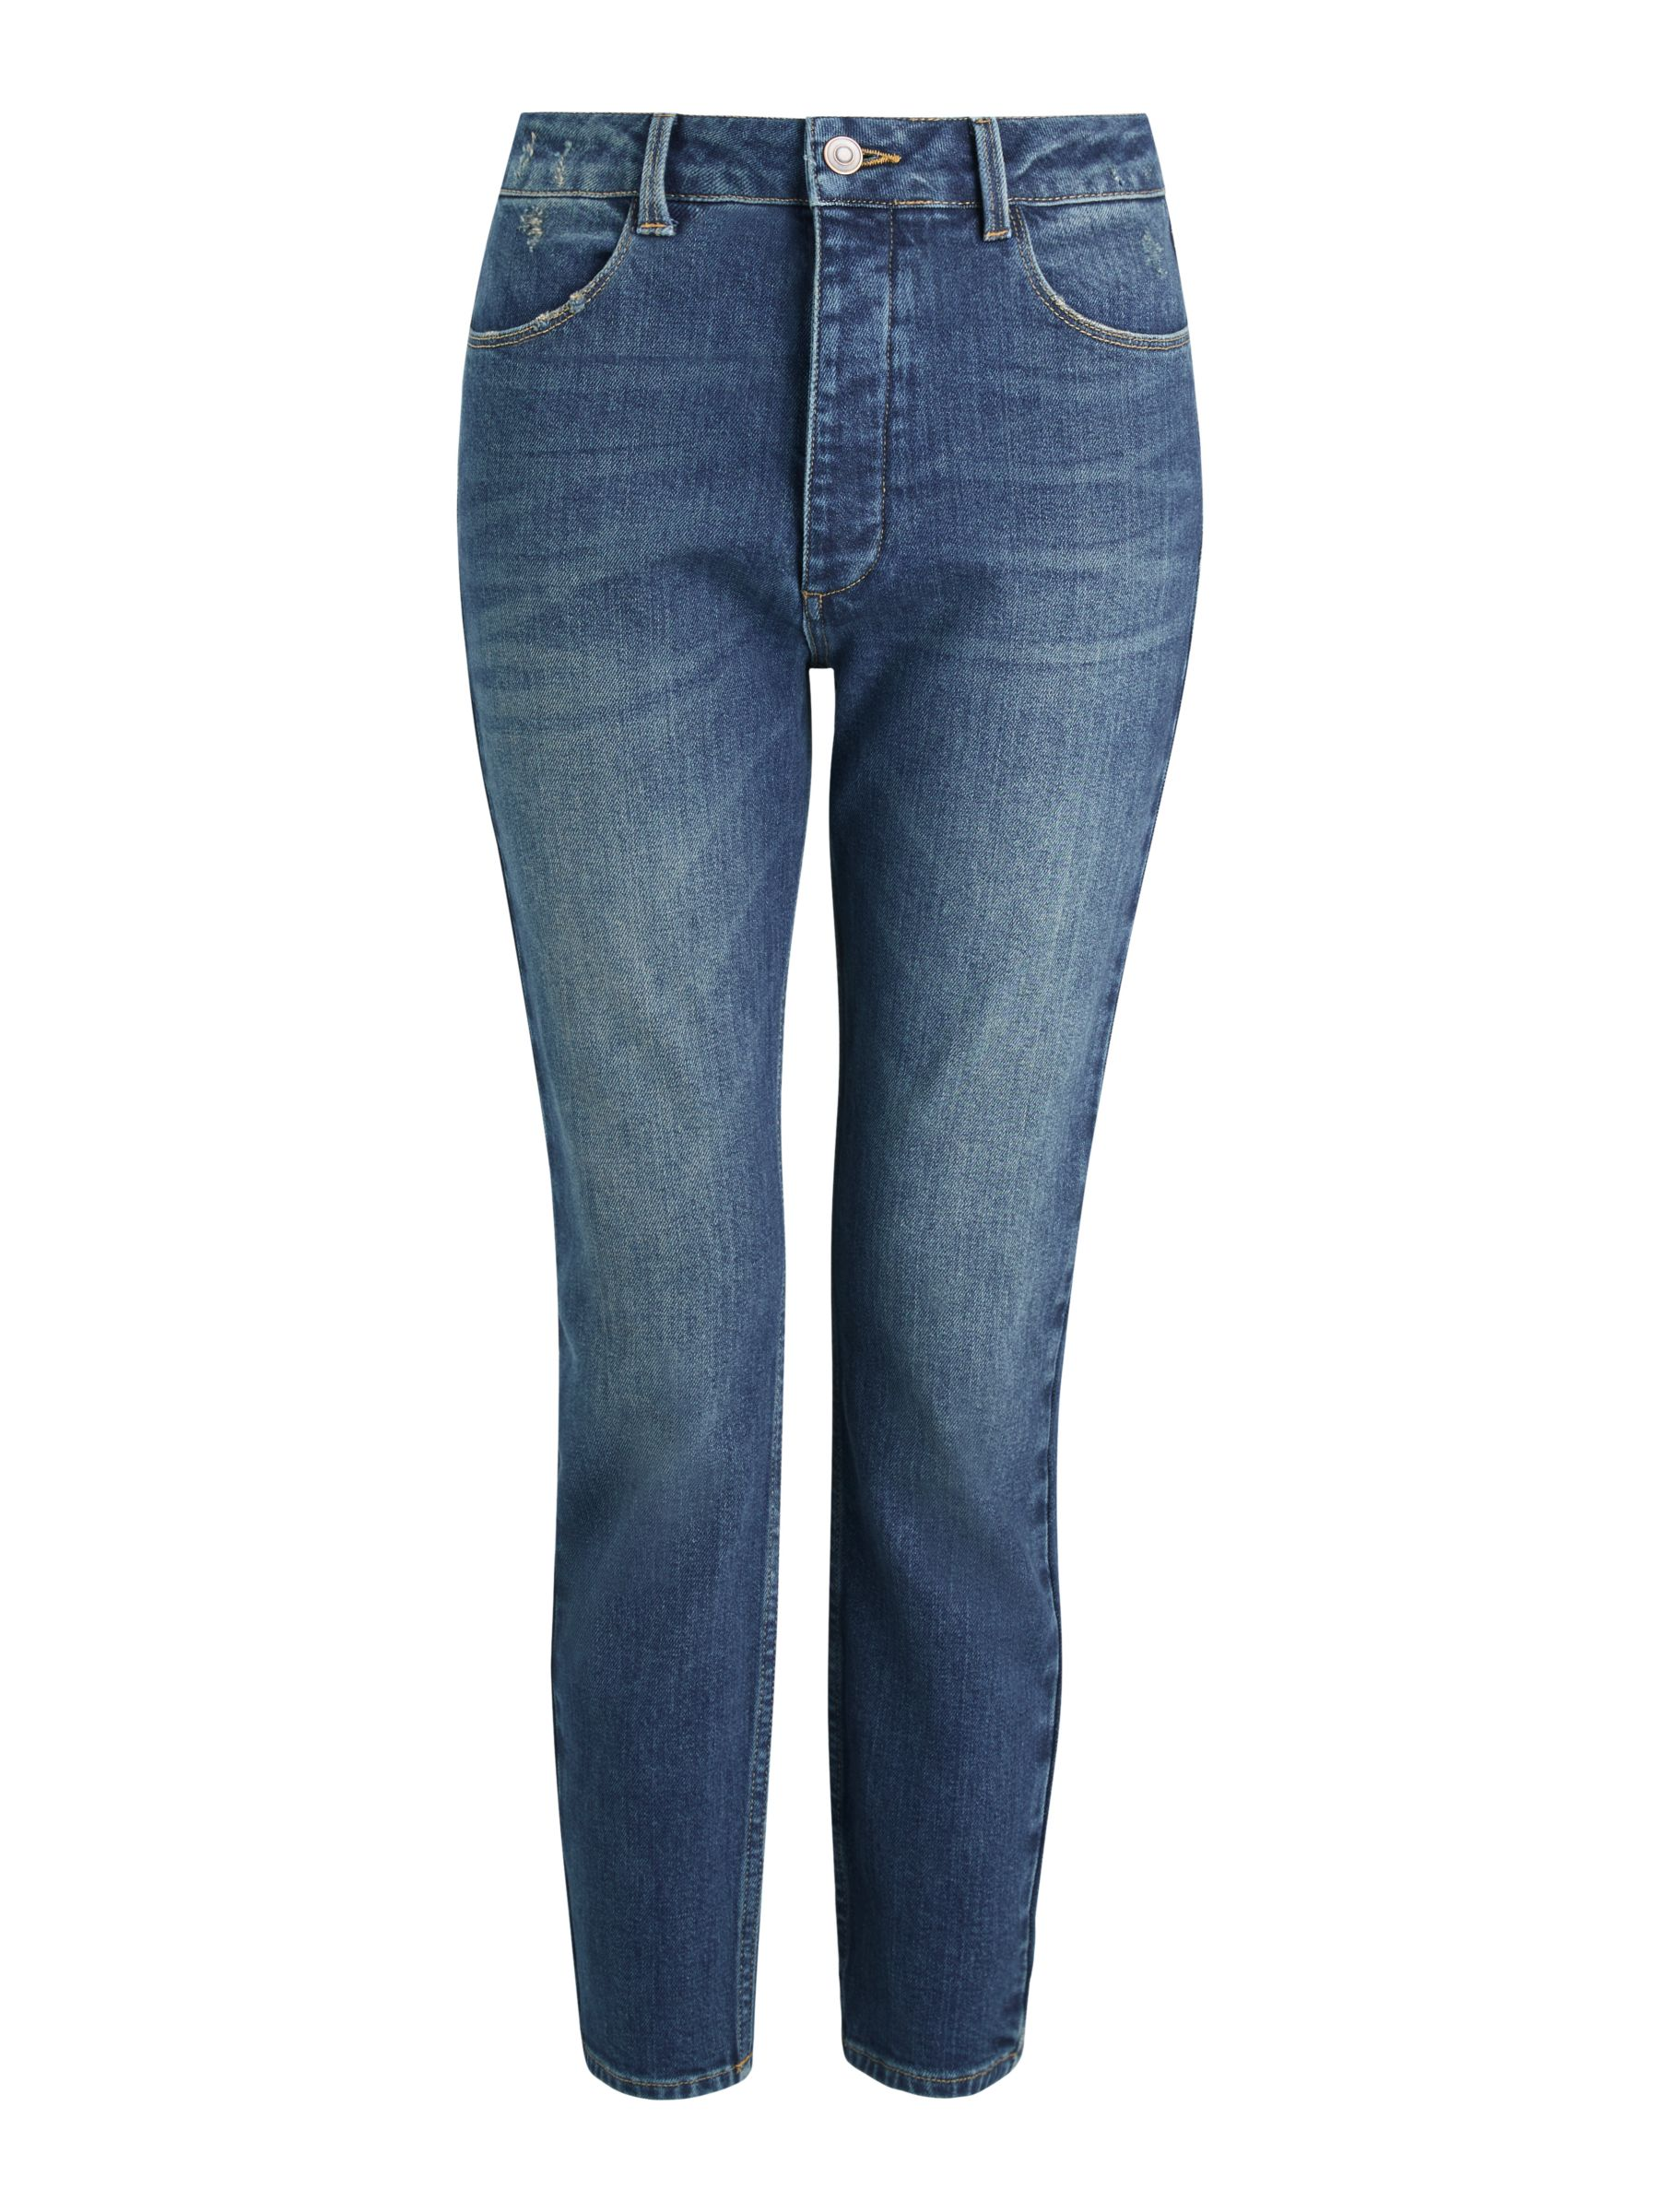 Buy AND/OR Catalina Vintage High Rise Jeans, Blue Amour, 26R Online at johnlewis.com